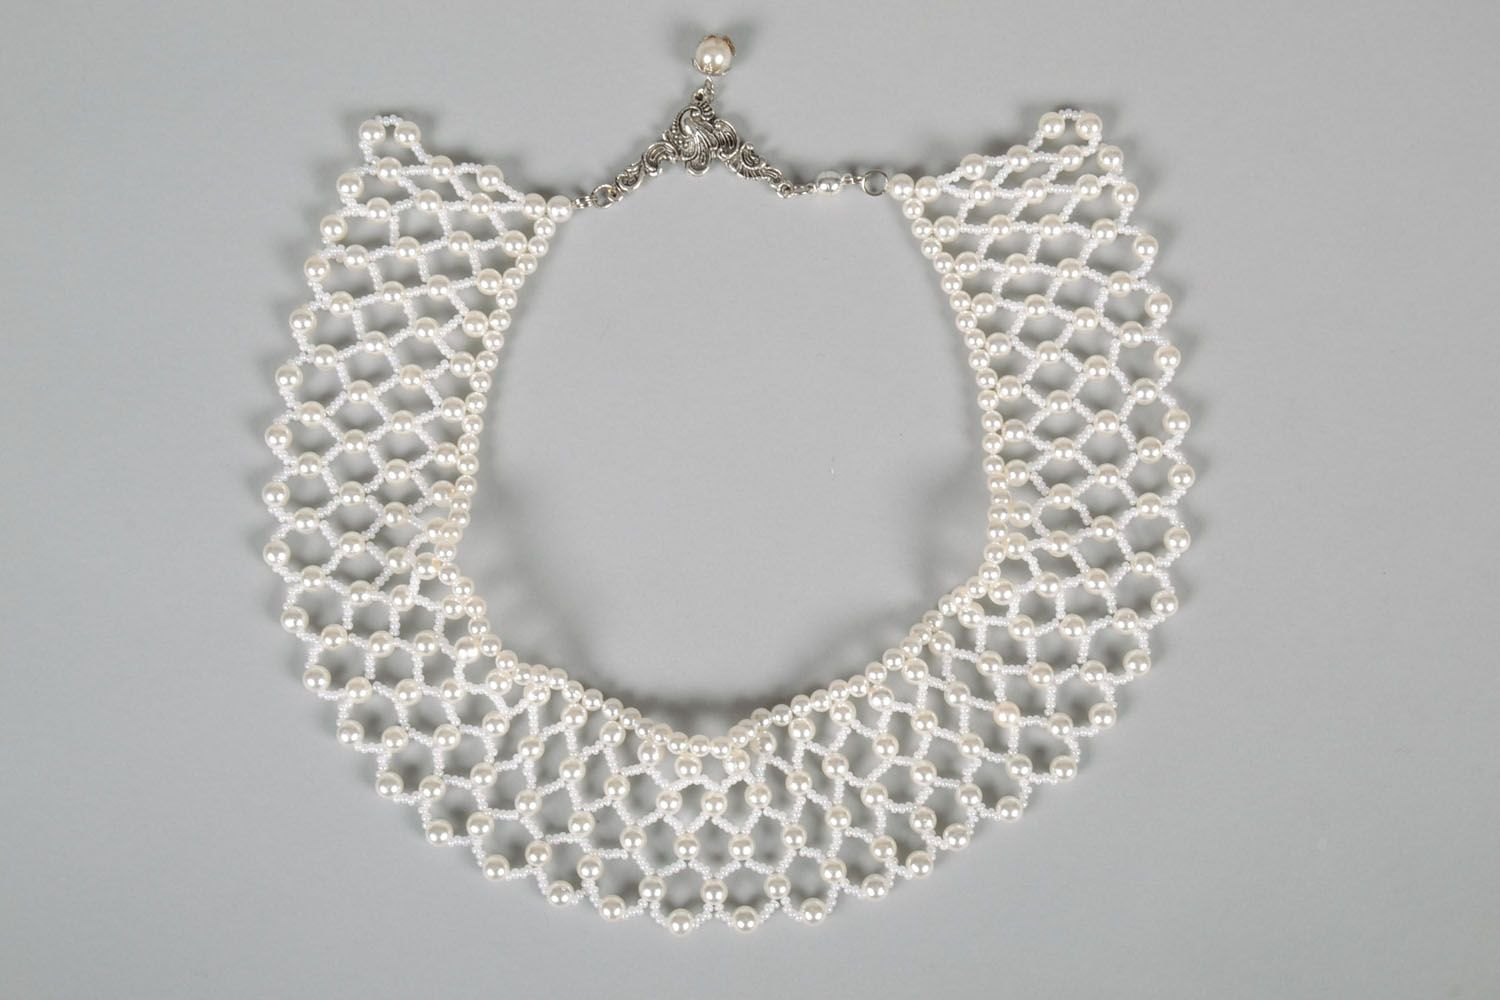 Lacy necklace made of white beads photo 5